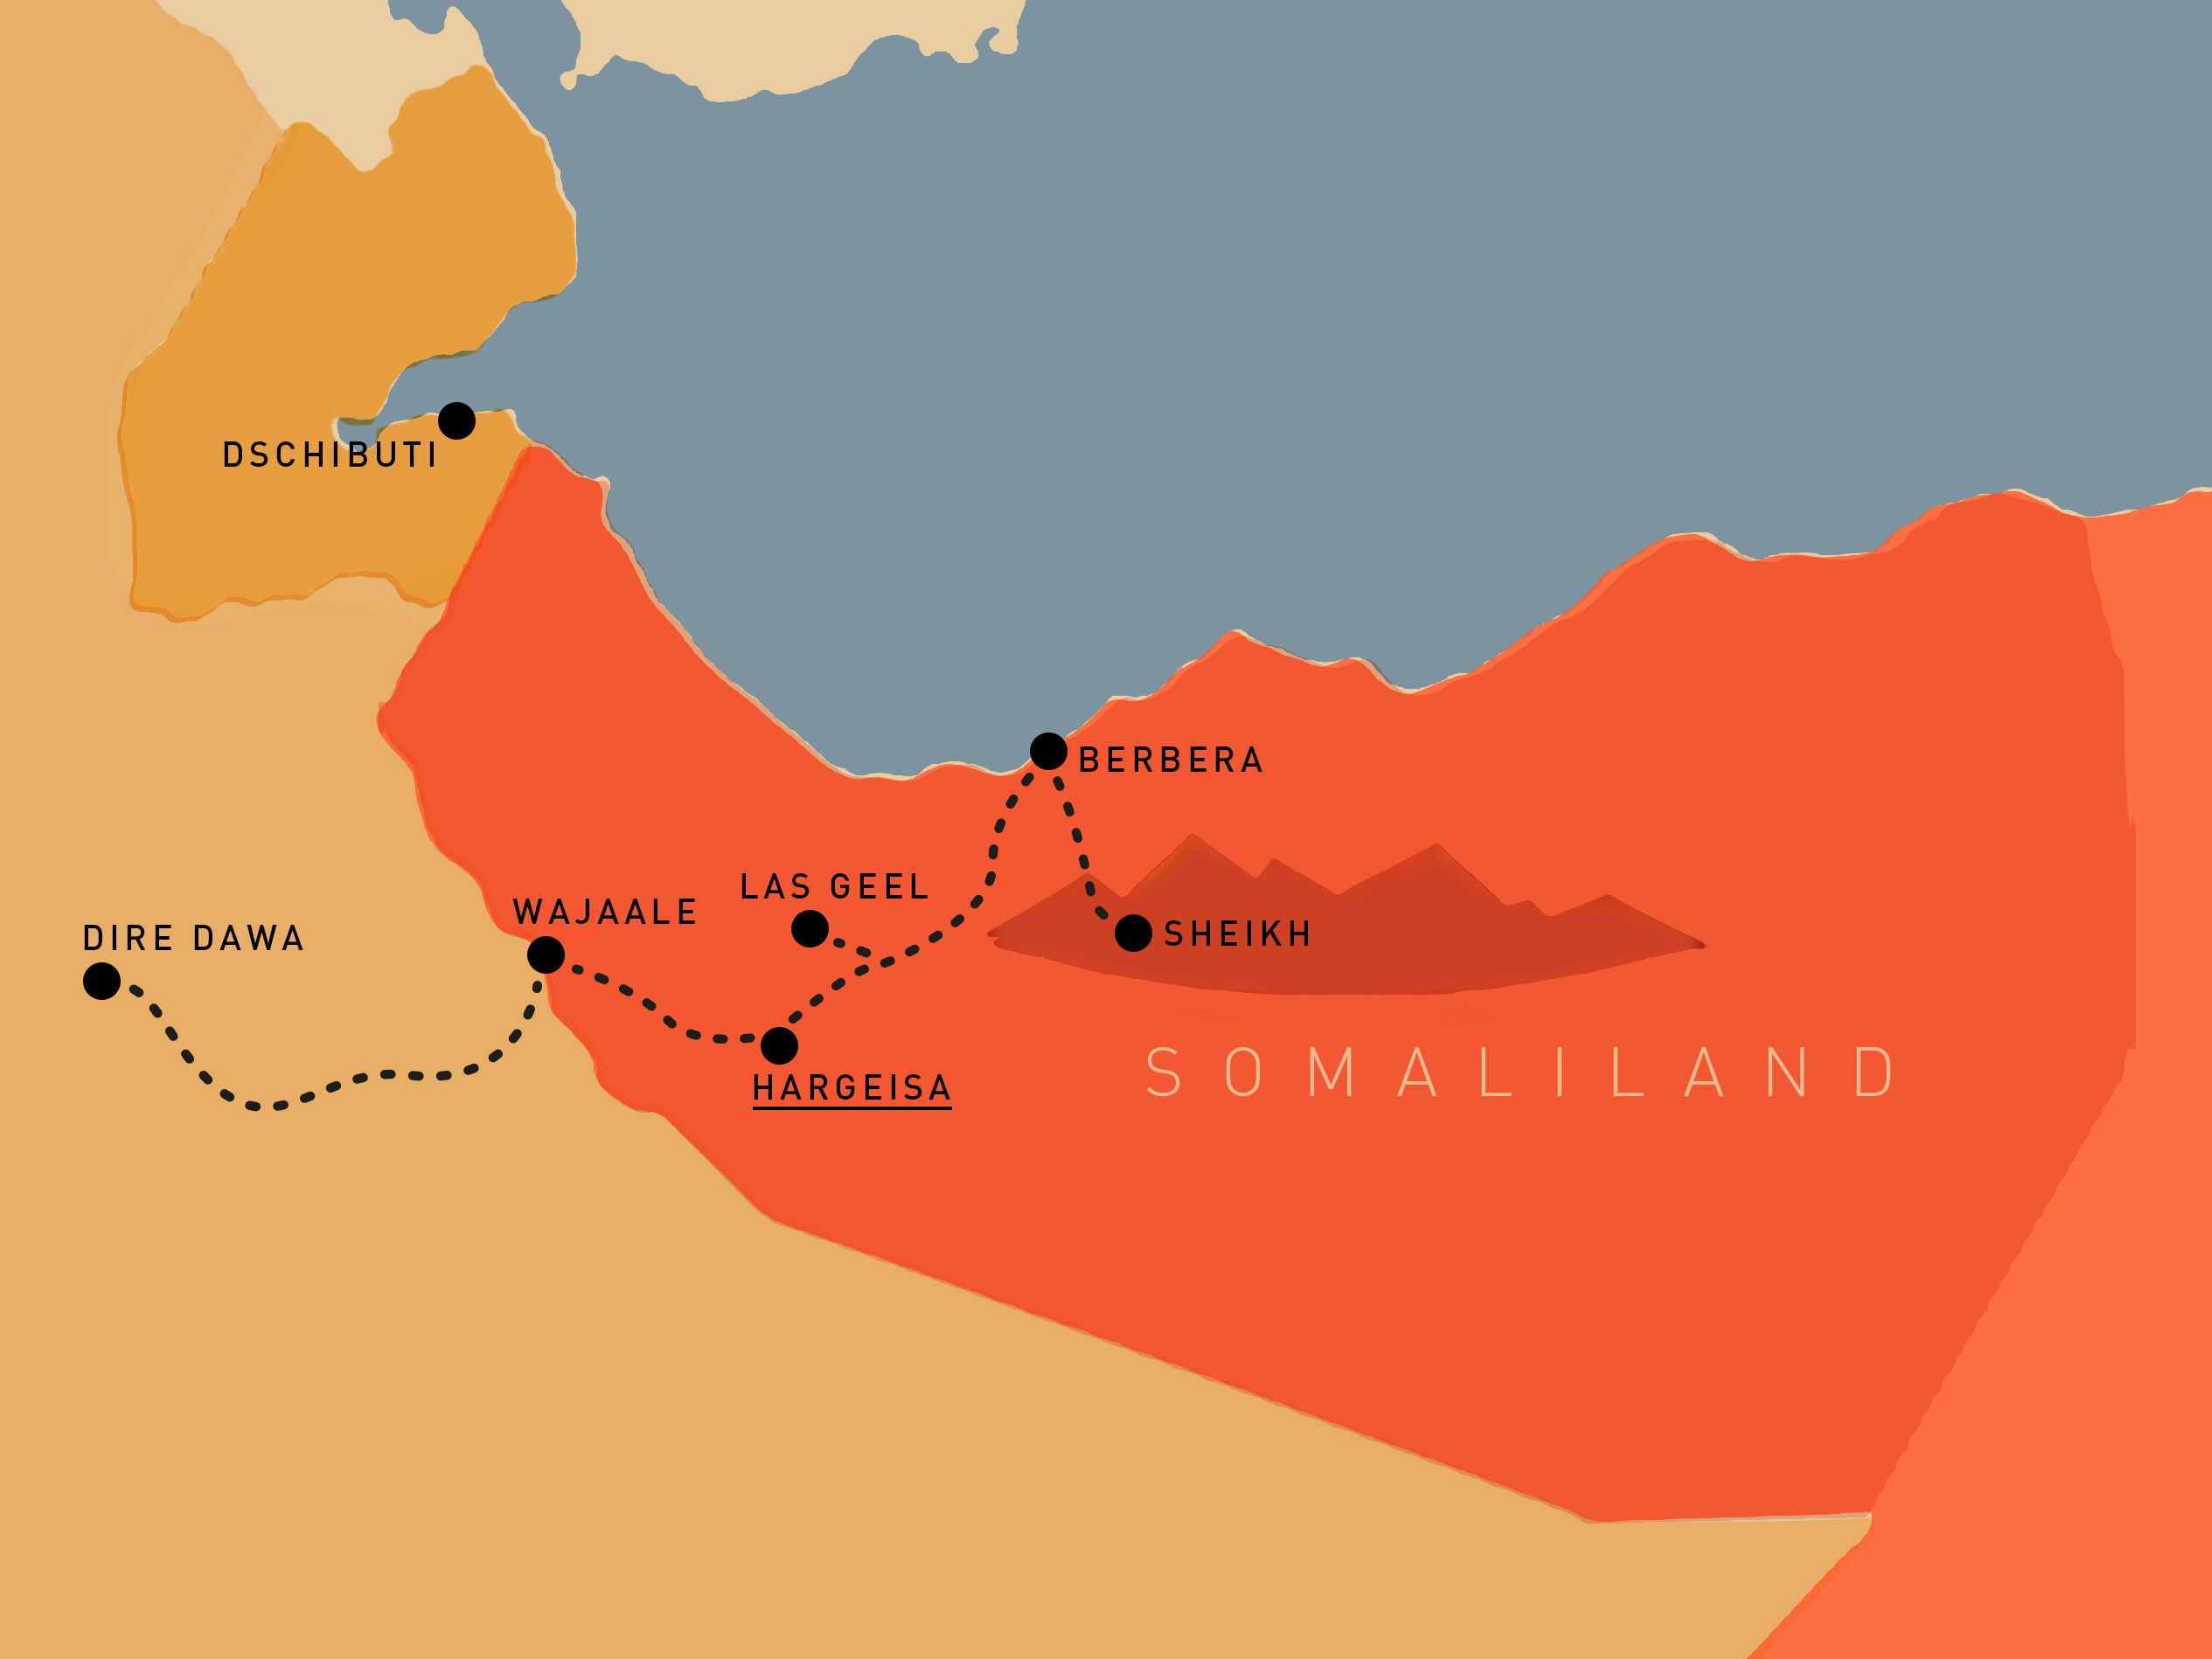 We start our journey in Ethiopia, in Wajaale we cross the border to Somaliland.